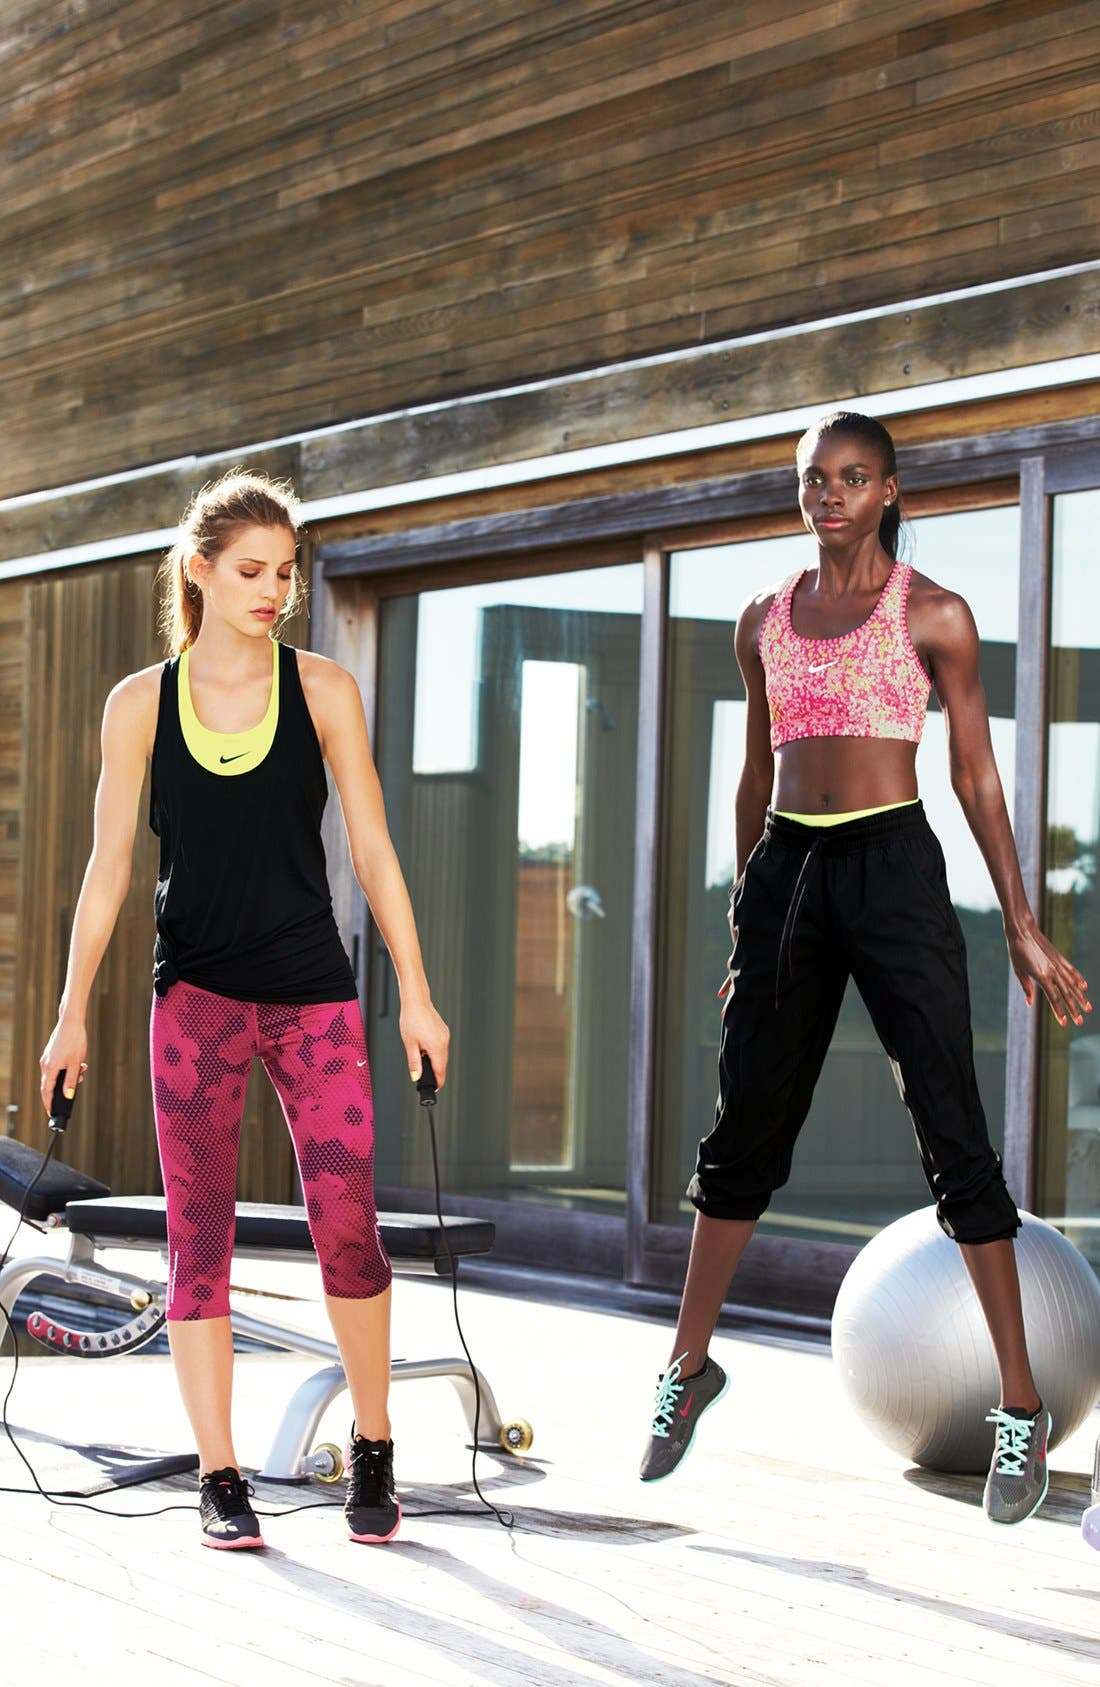 Alternate Image 1 Selected - Nike Sports Bra & Pants